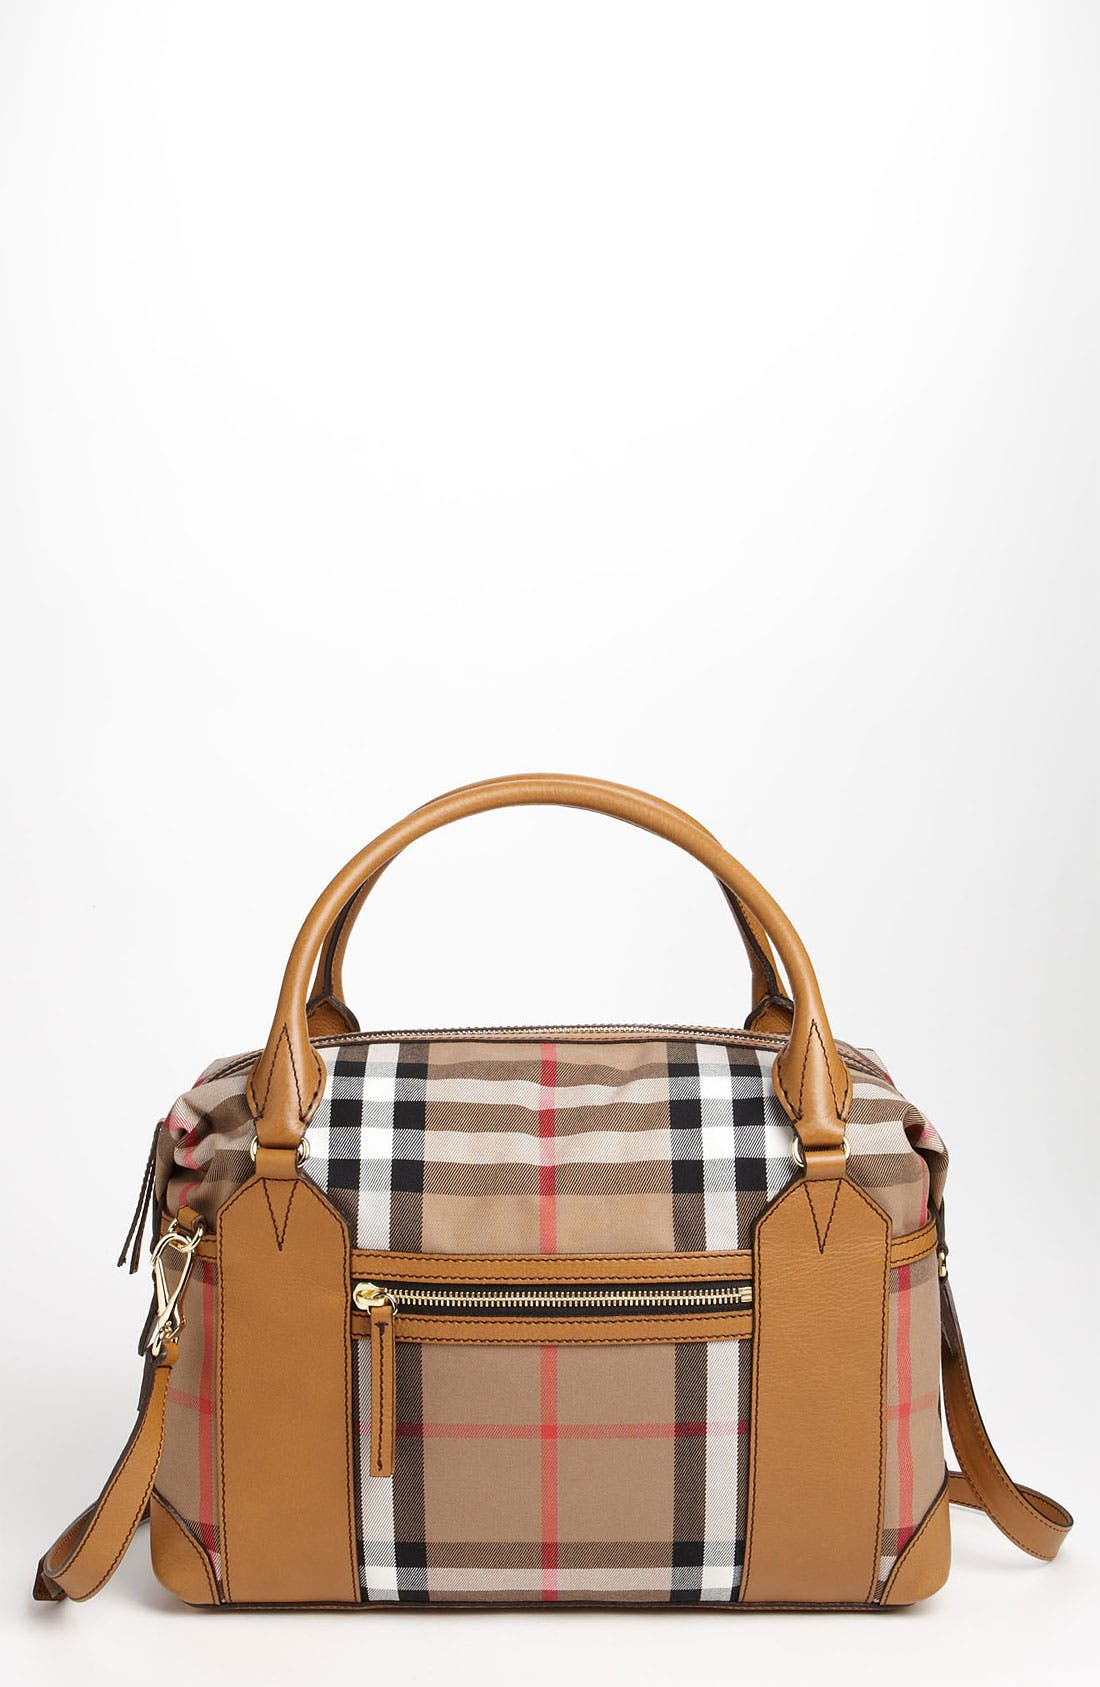 Alternate Image 1 Selected - Burberry 'House Check' Diaper Bag